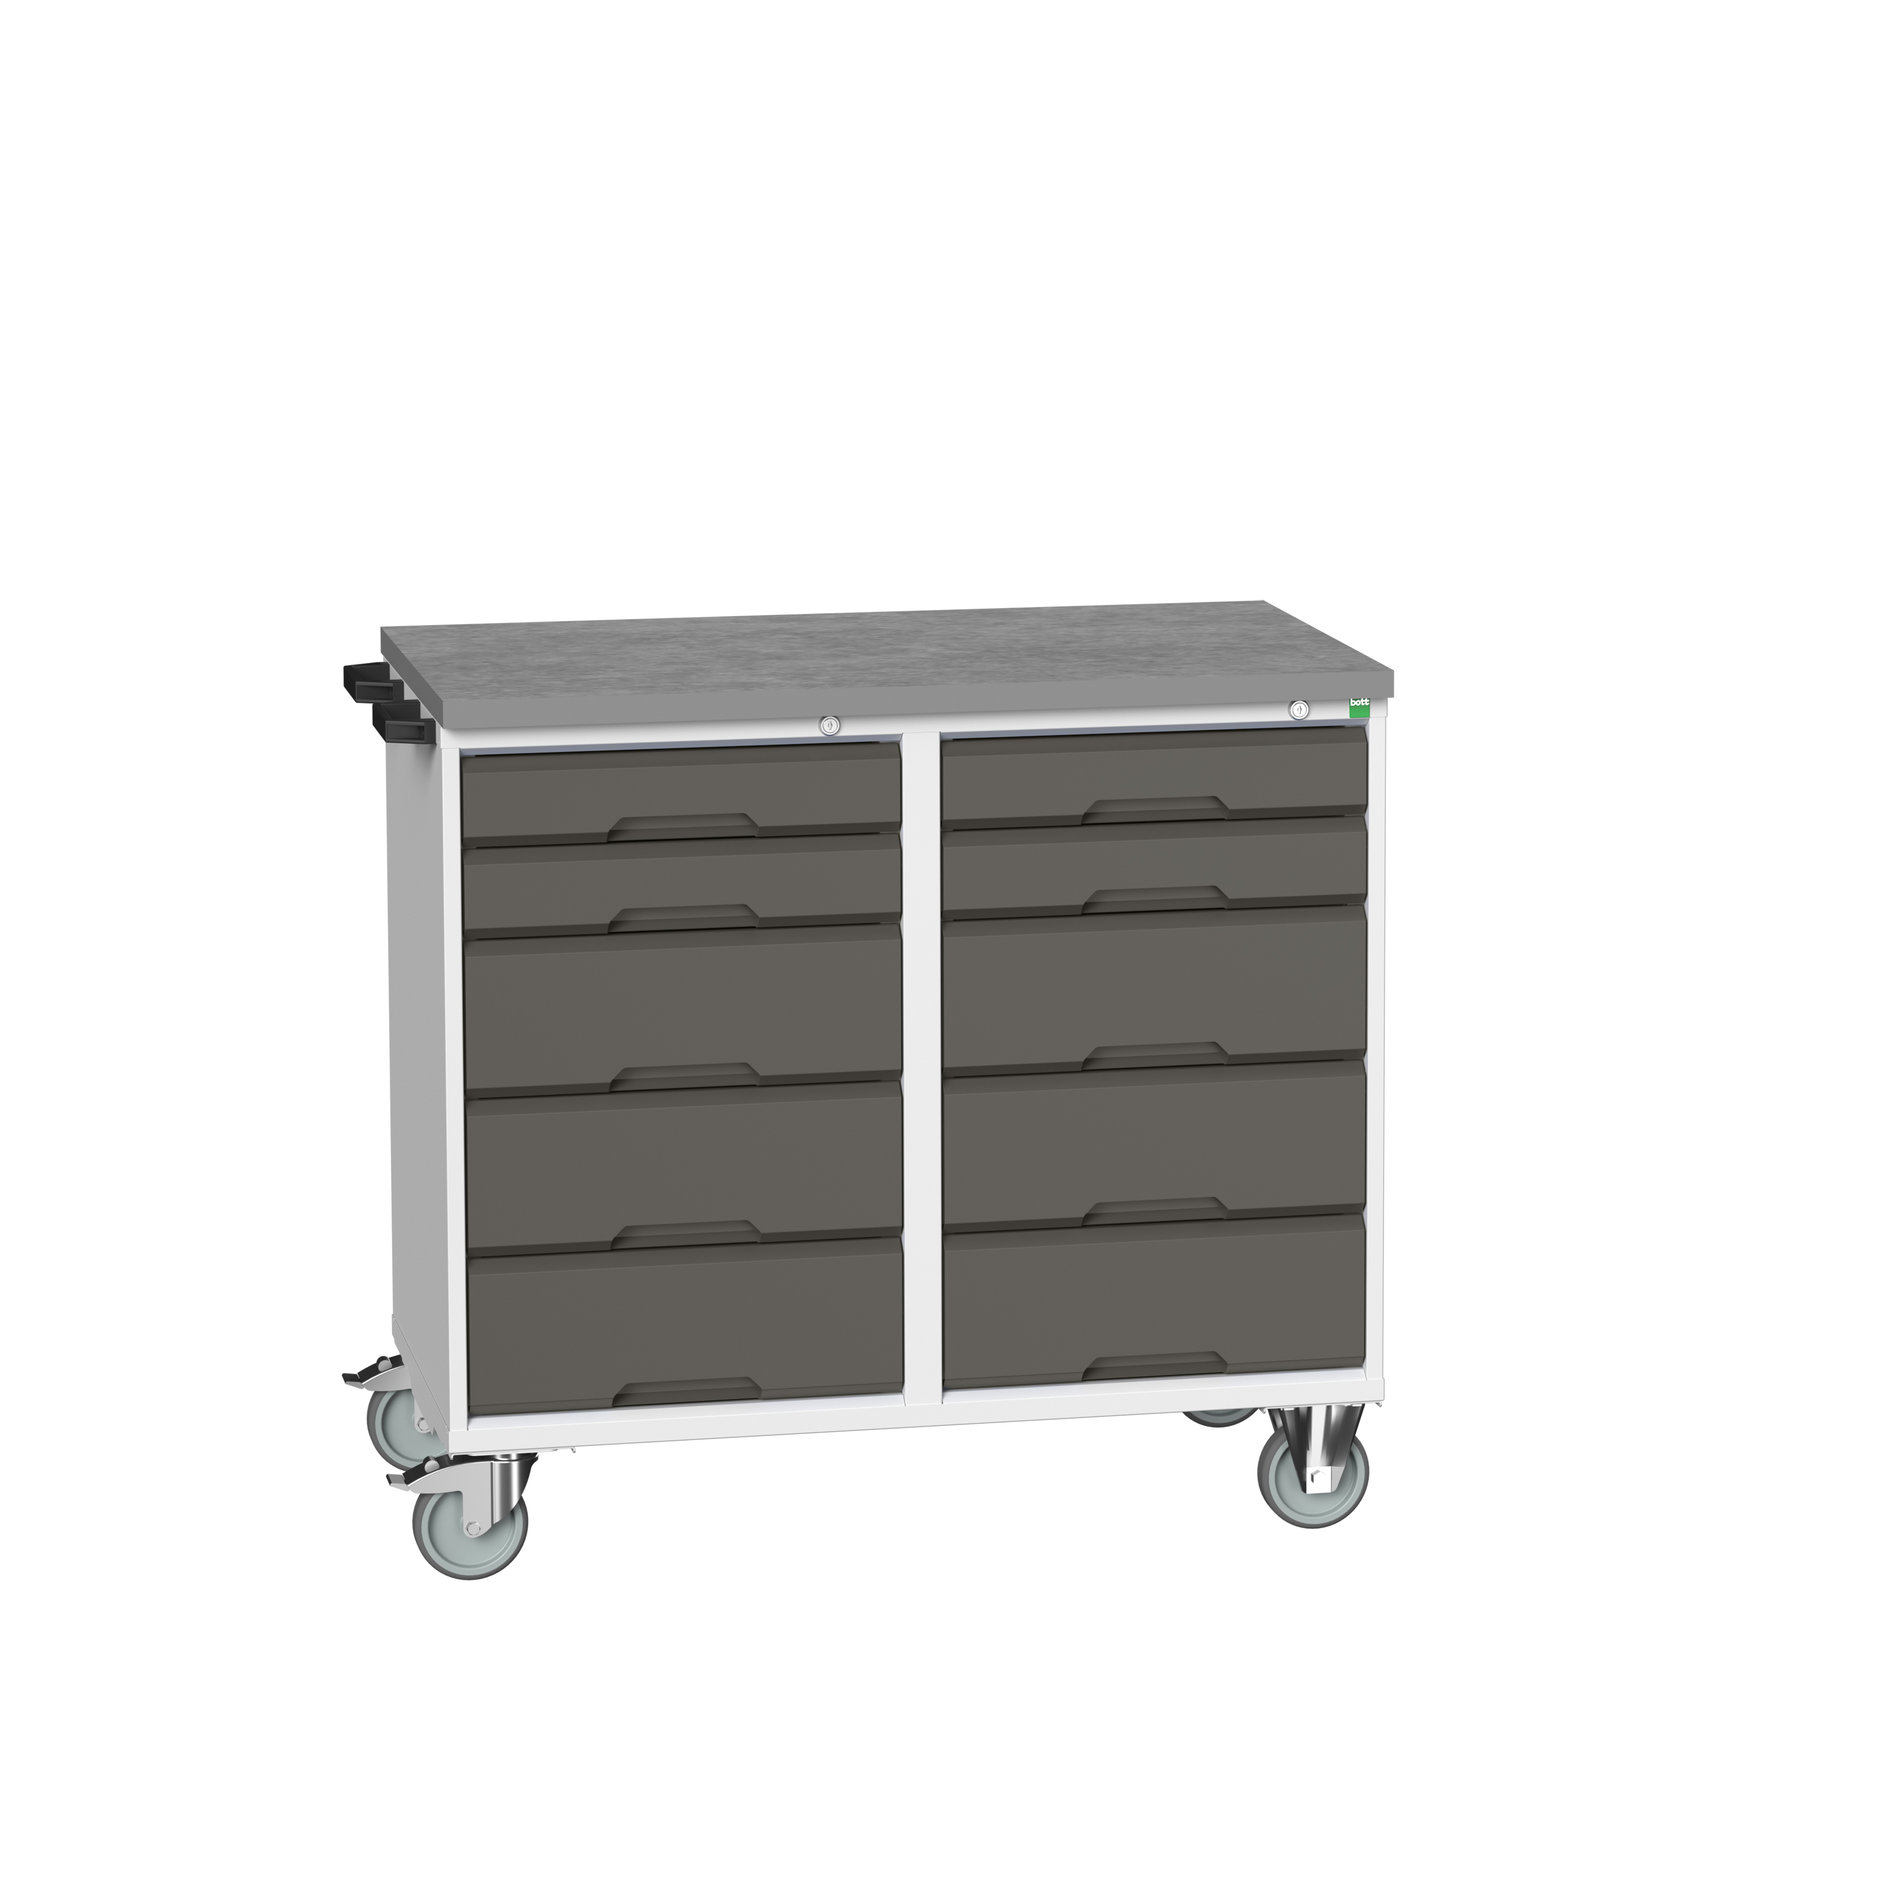 Bott Verso Maintenance Trolley With 10 Drawers & Lino Top